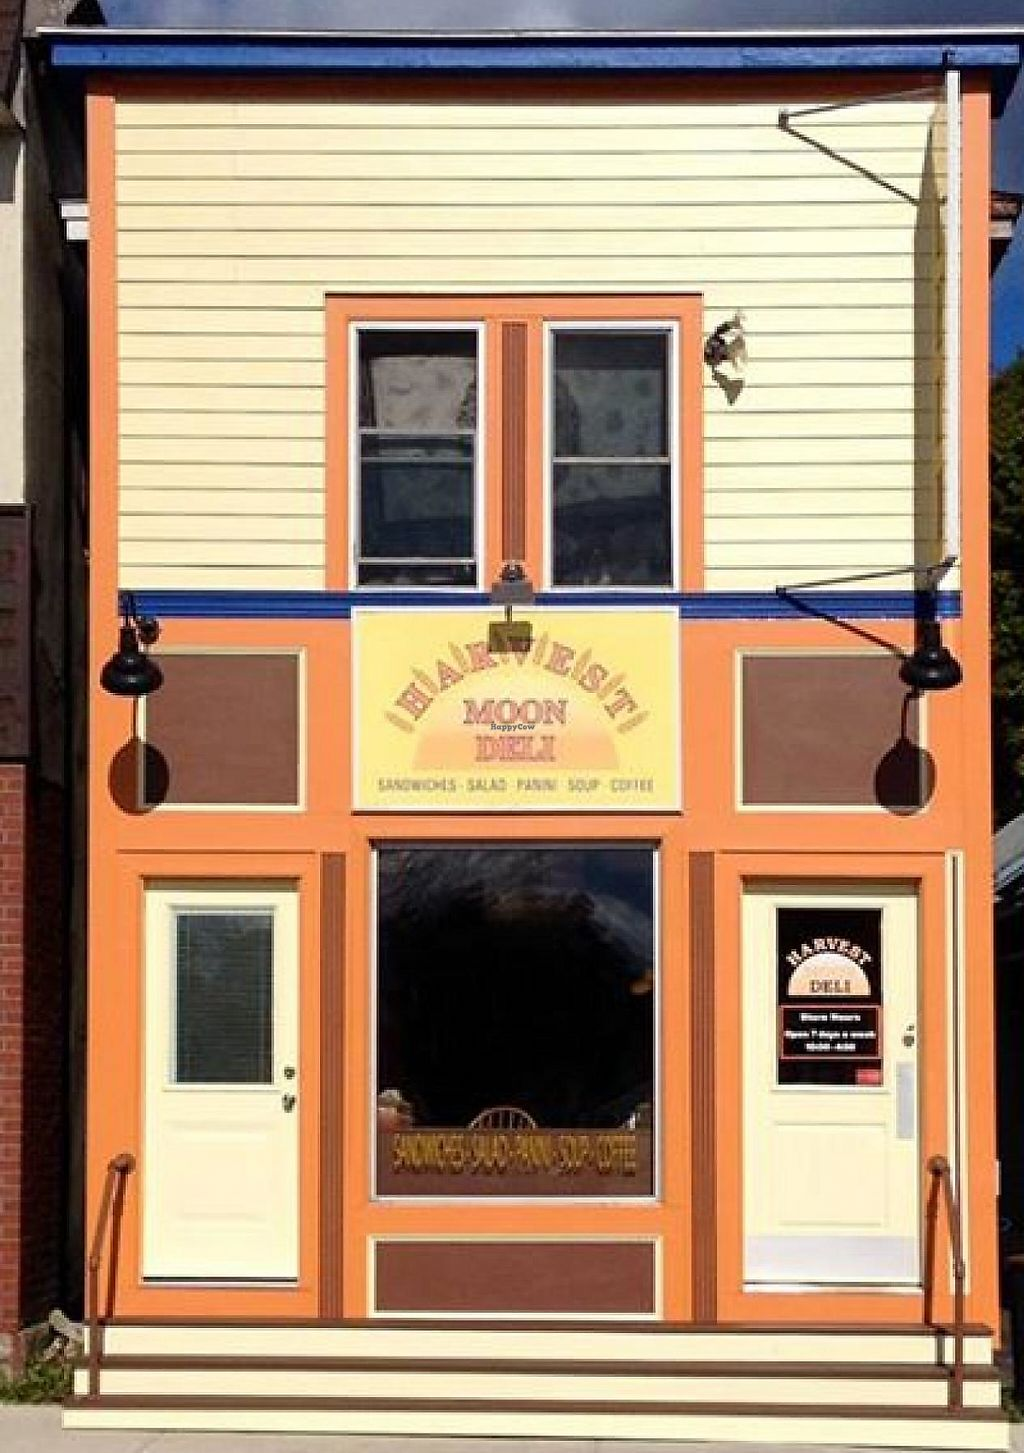 """Photo of Harvest Moon Deli  by <a href=""""/members/profile/community"""">community</a> <br/>Harvest Moon Deli <br/> April 11, 2015  - <a href='/contact/abuse/image/57128/201444'>Report</a>"""